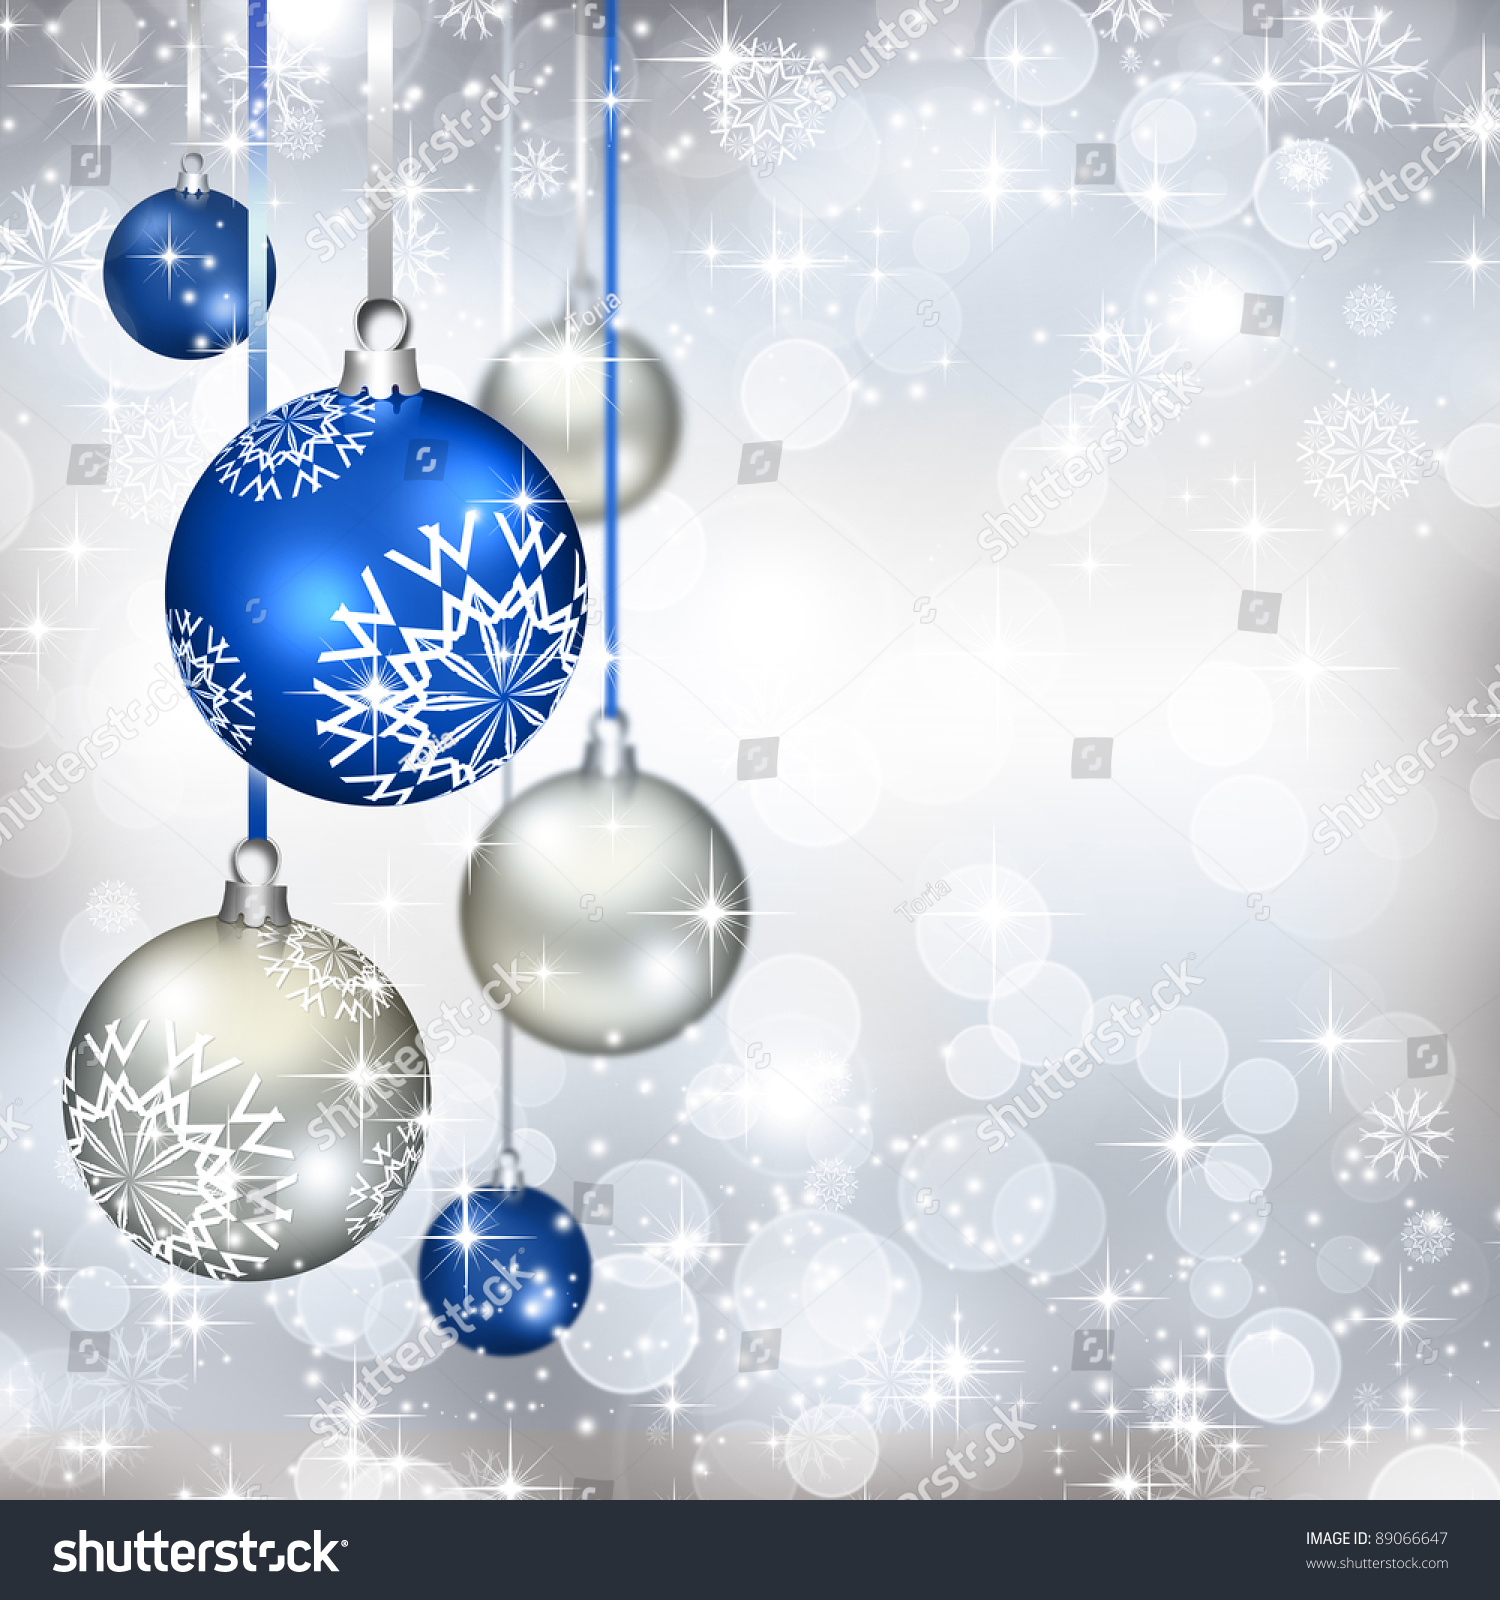 best elegant christmas background with blue baubles - Elegant Christmas